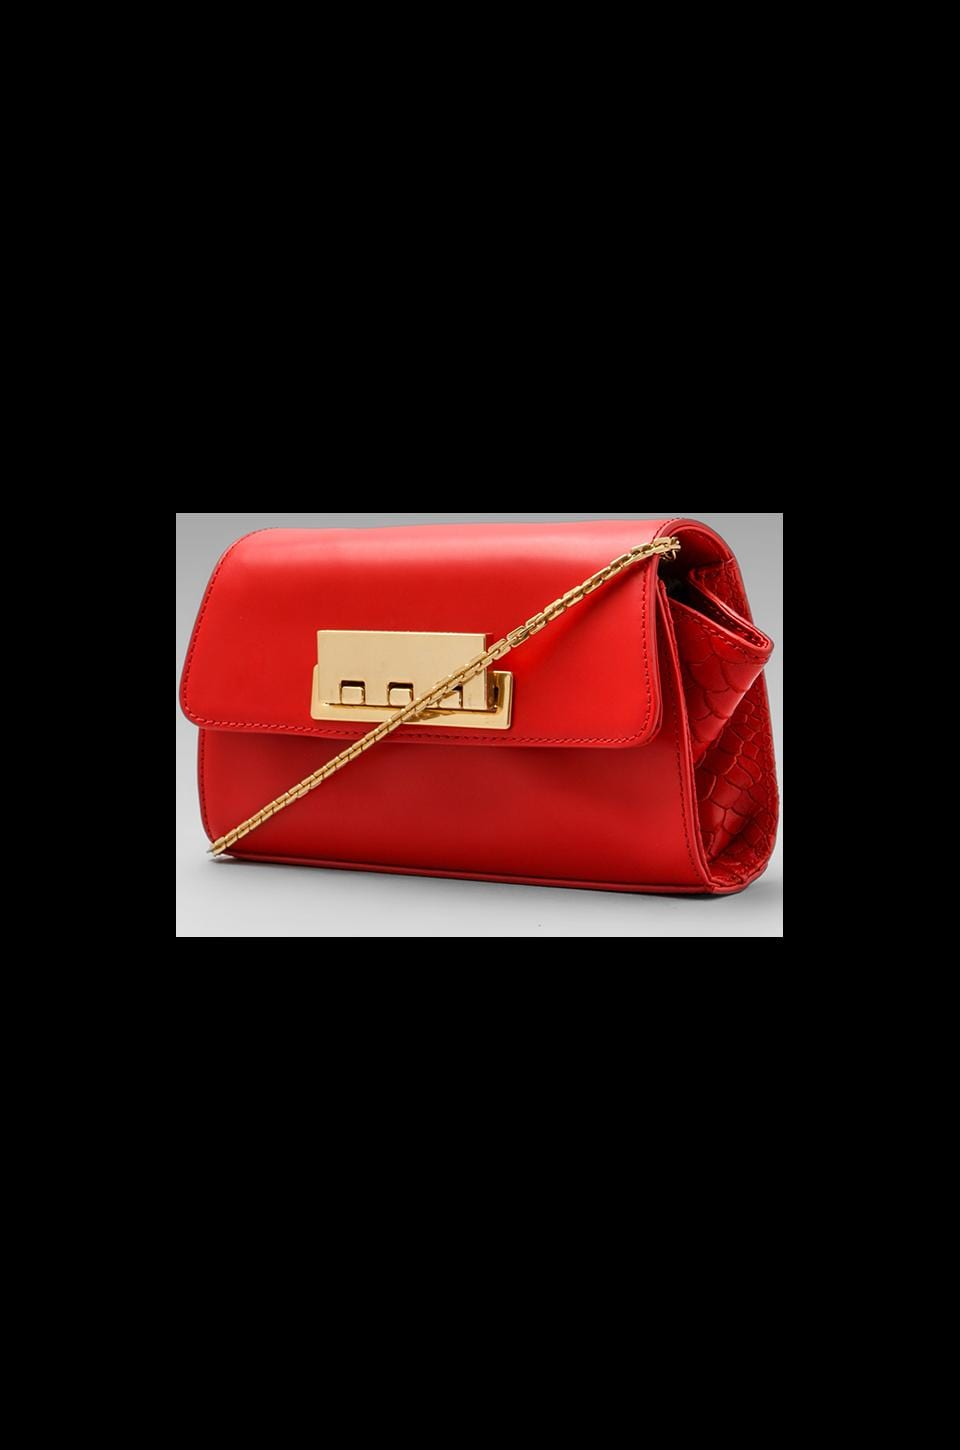 Z Spoke by Zac Posen Eartha Crossbody in Poppy